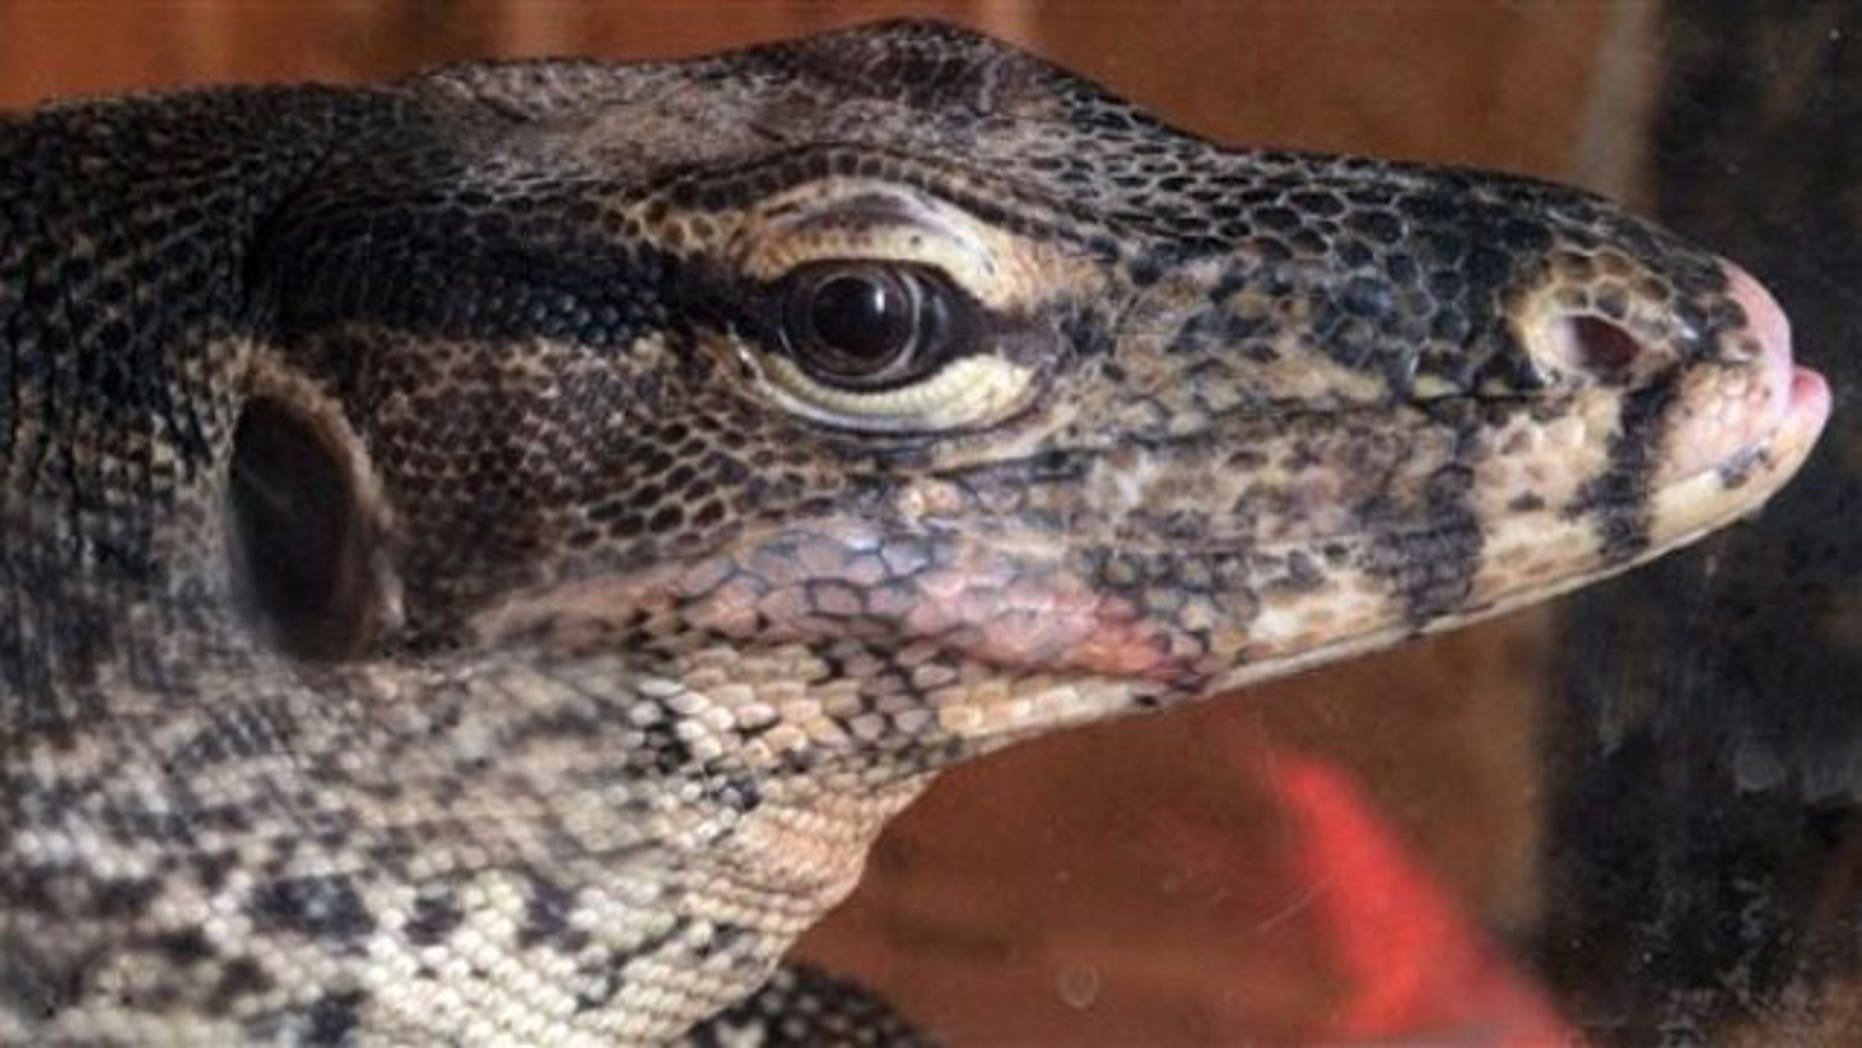 A monitor lizard (Varanus ) is displayed during a live exotic animal exhibition in the Bulgarian capital Sofia, Monday, April 19, 2010 (AP).